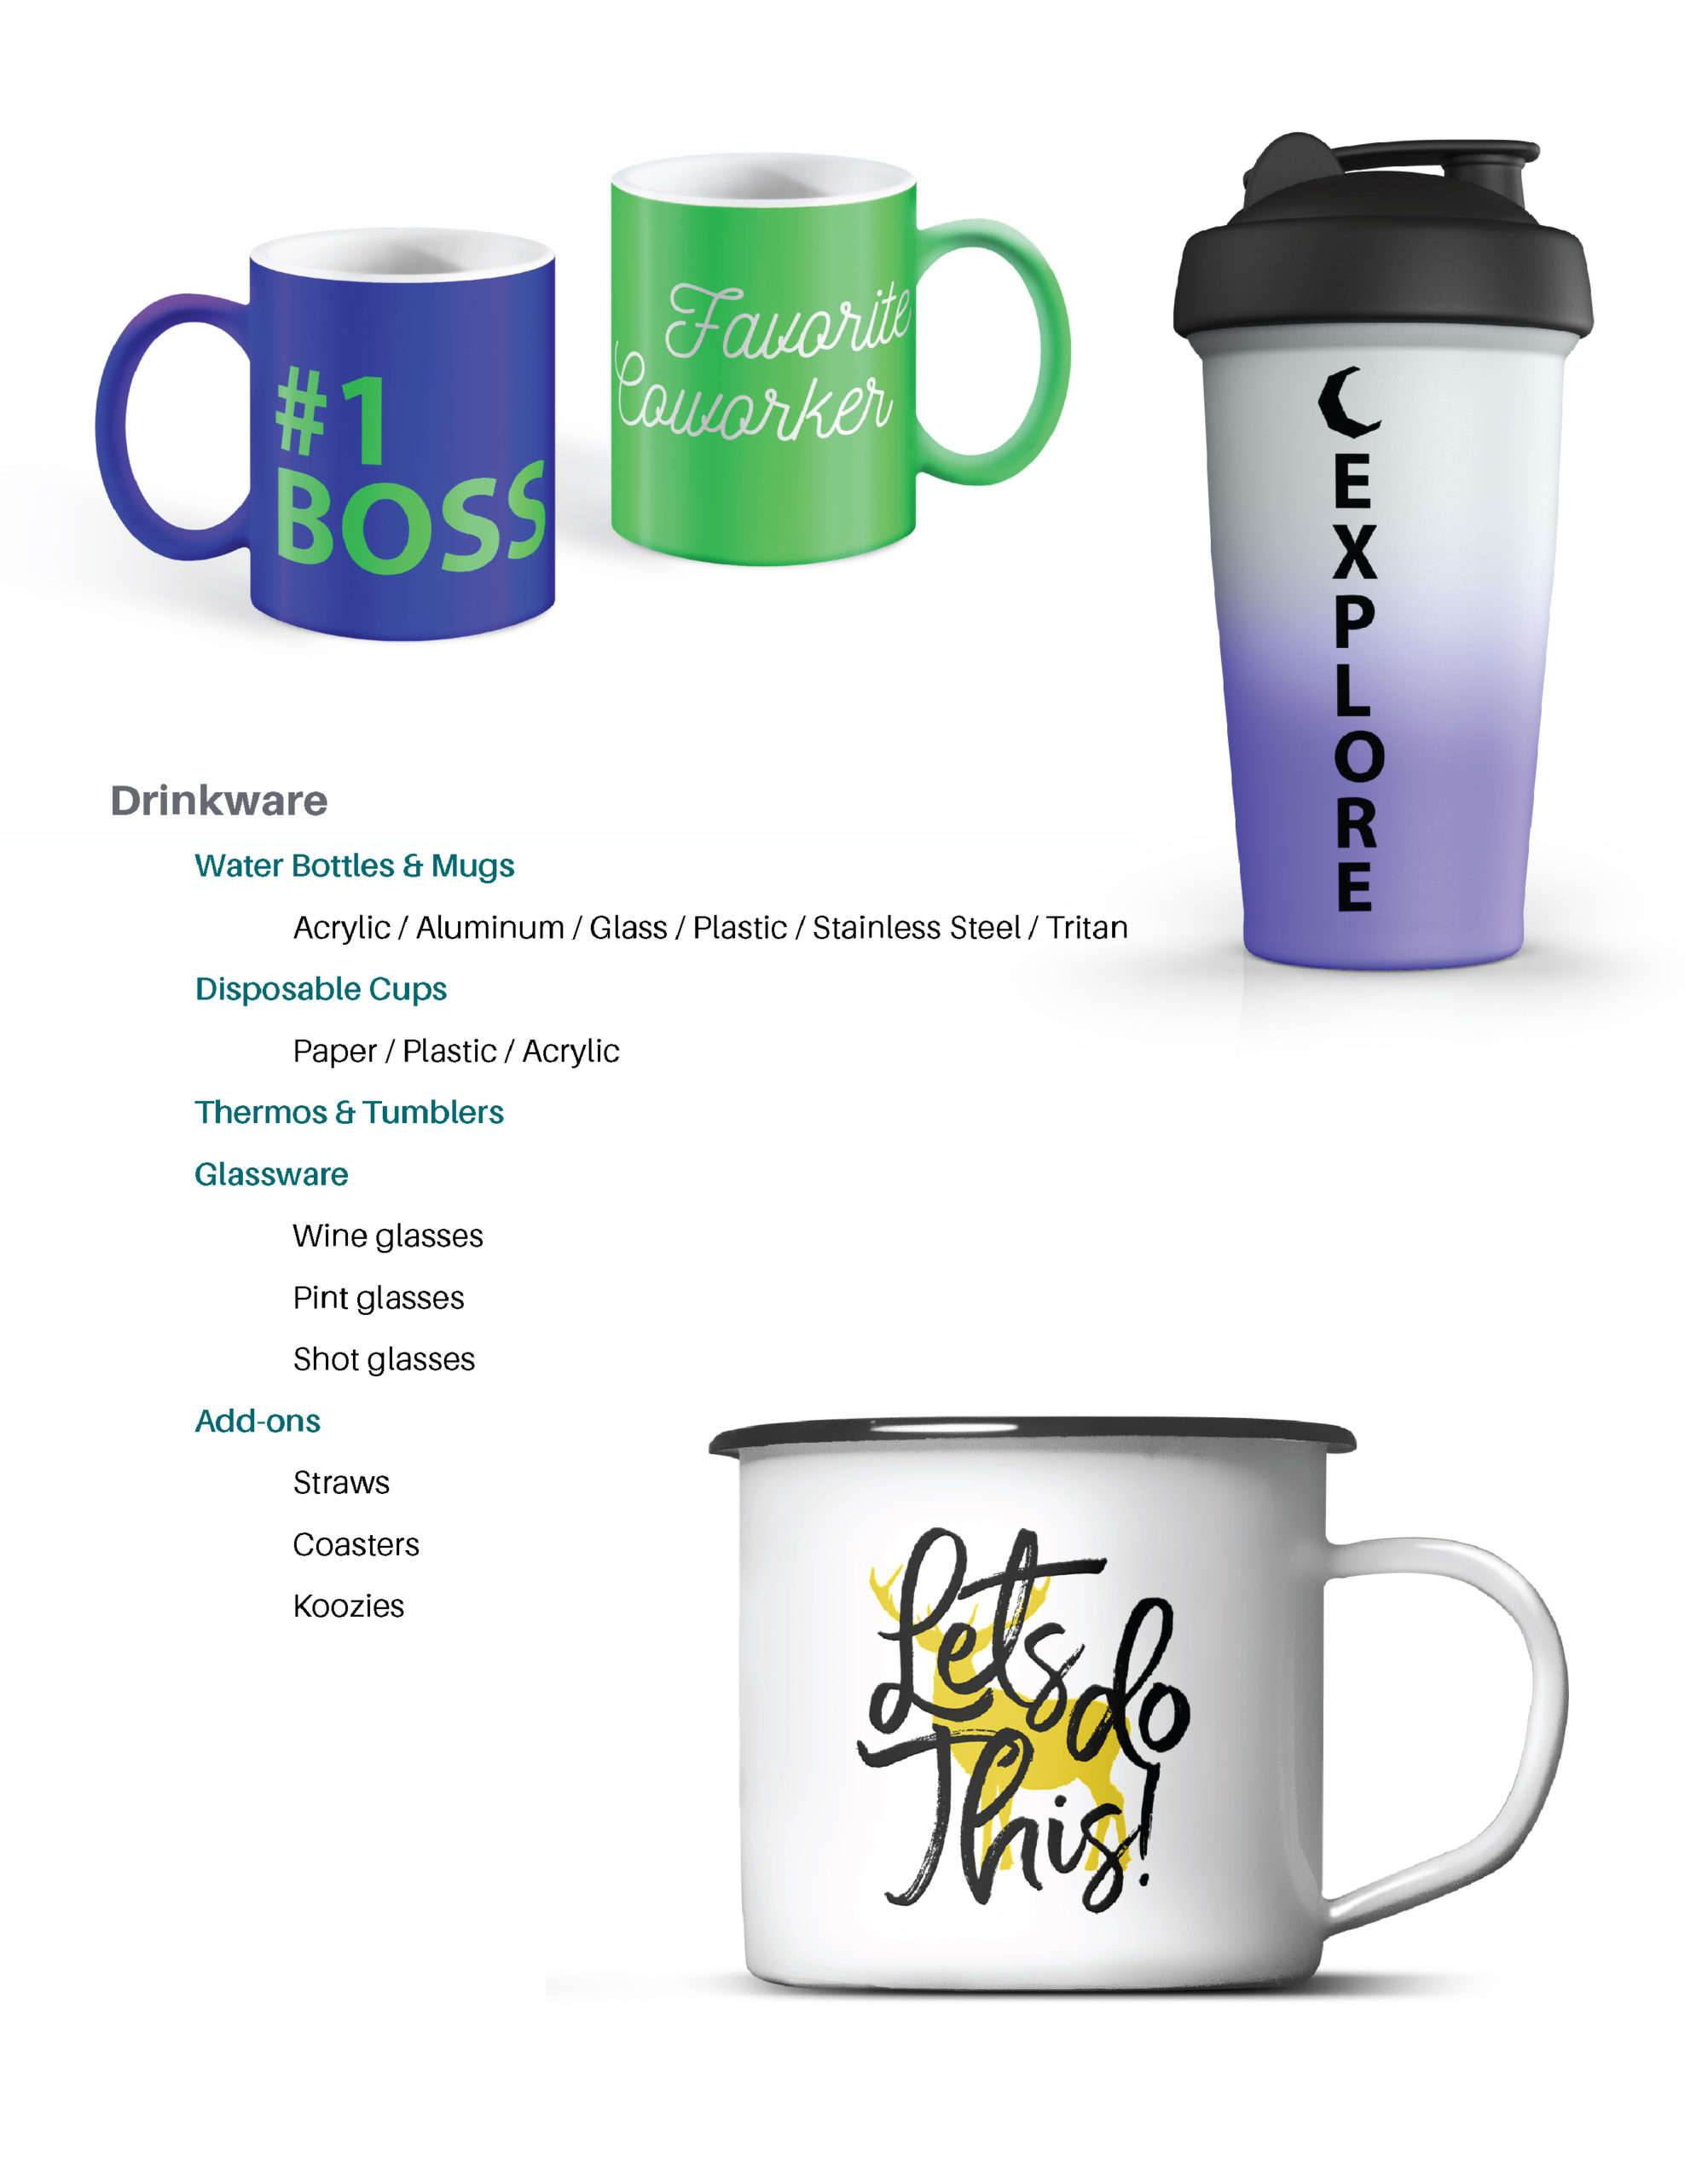 Page featuring product details on: watter bottles and mugs, disposable cups, thermos and tumblers, glassware, etc.